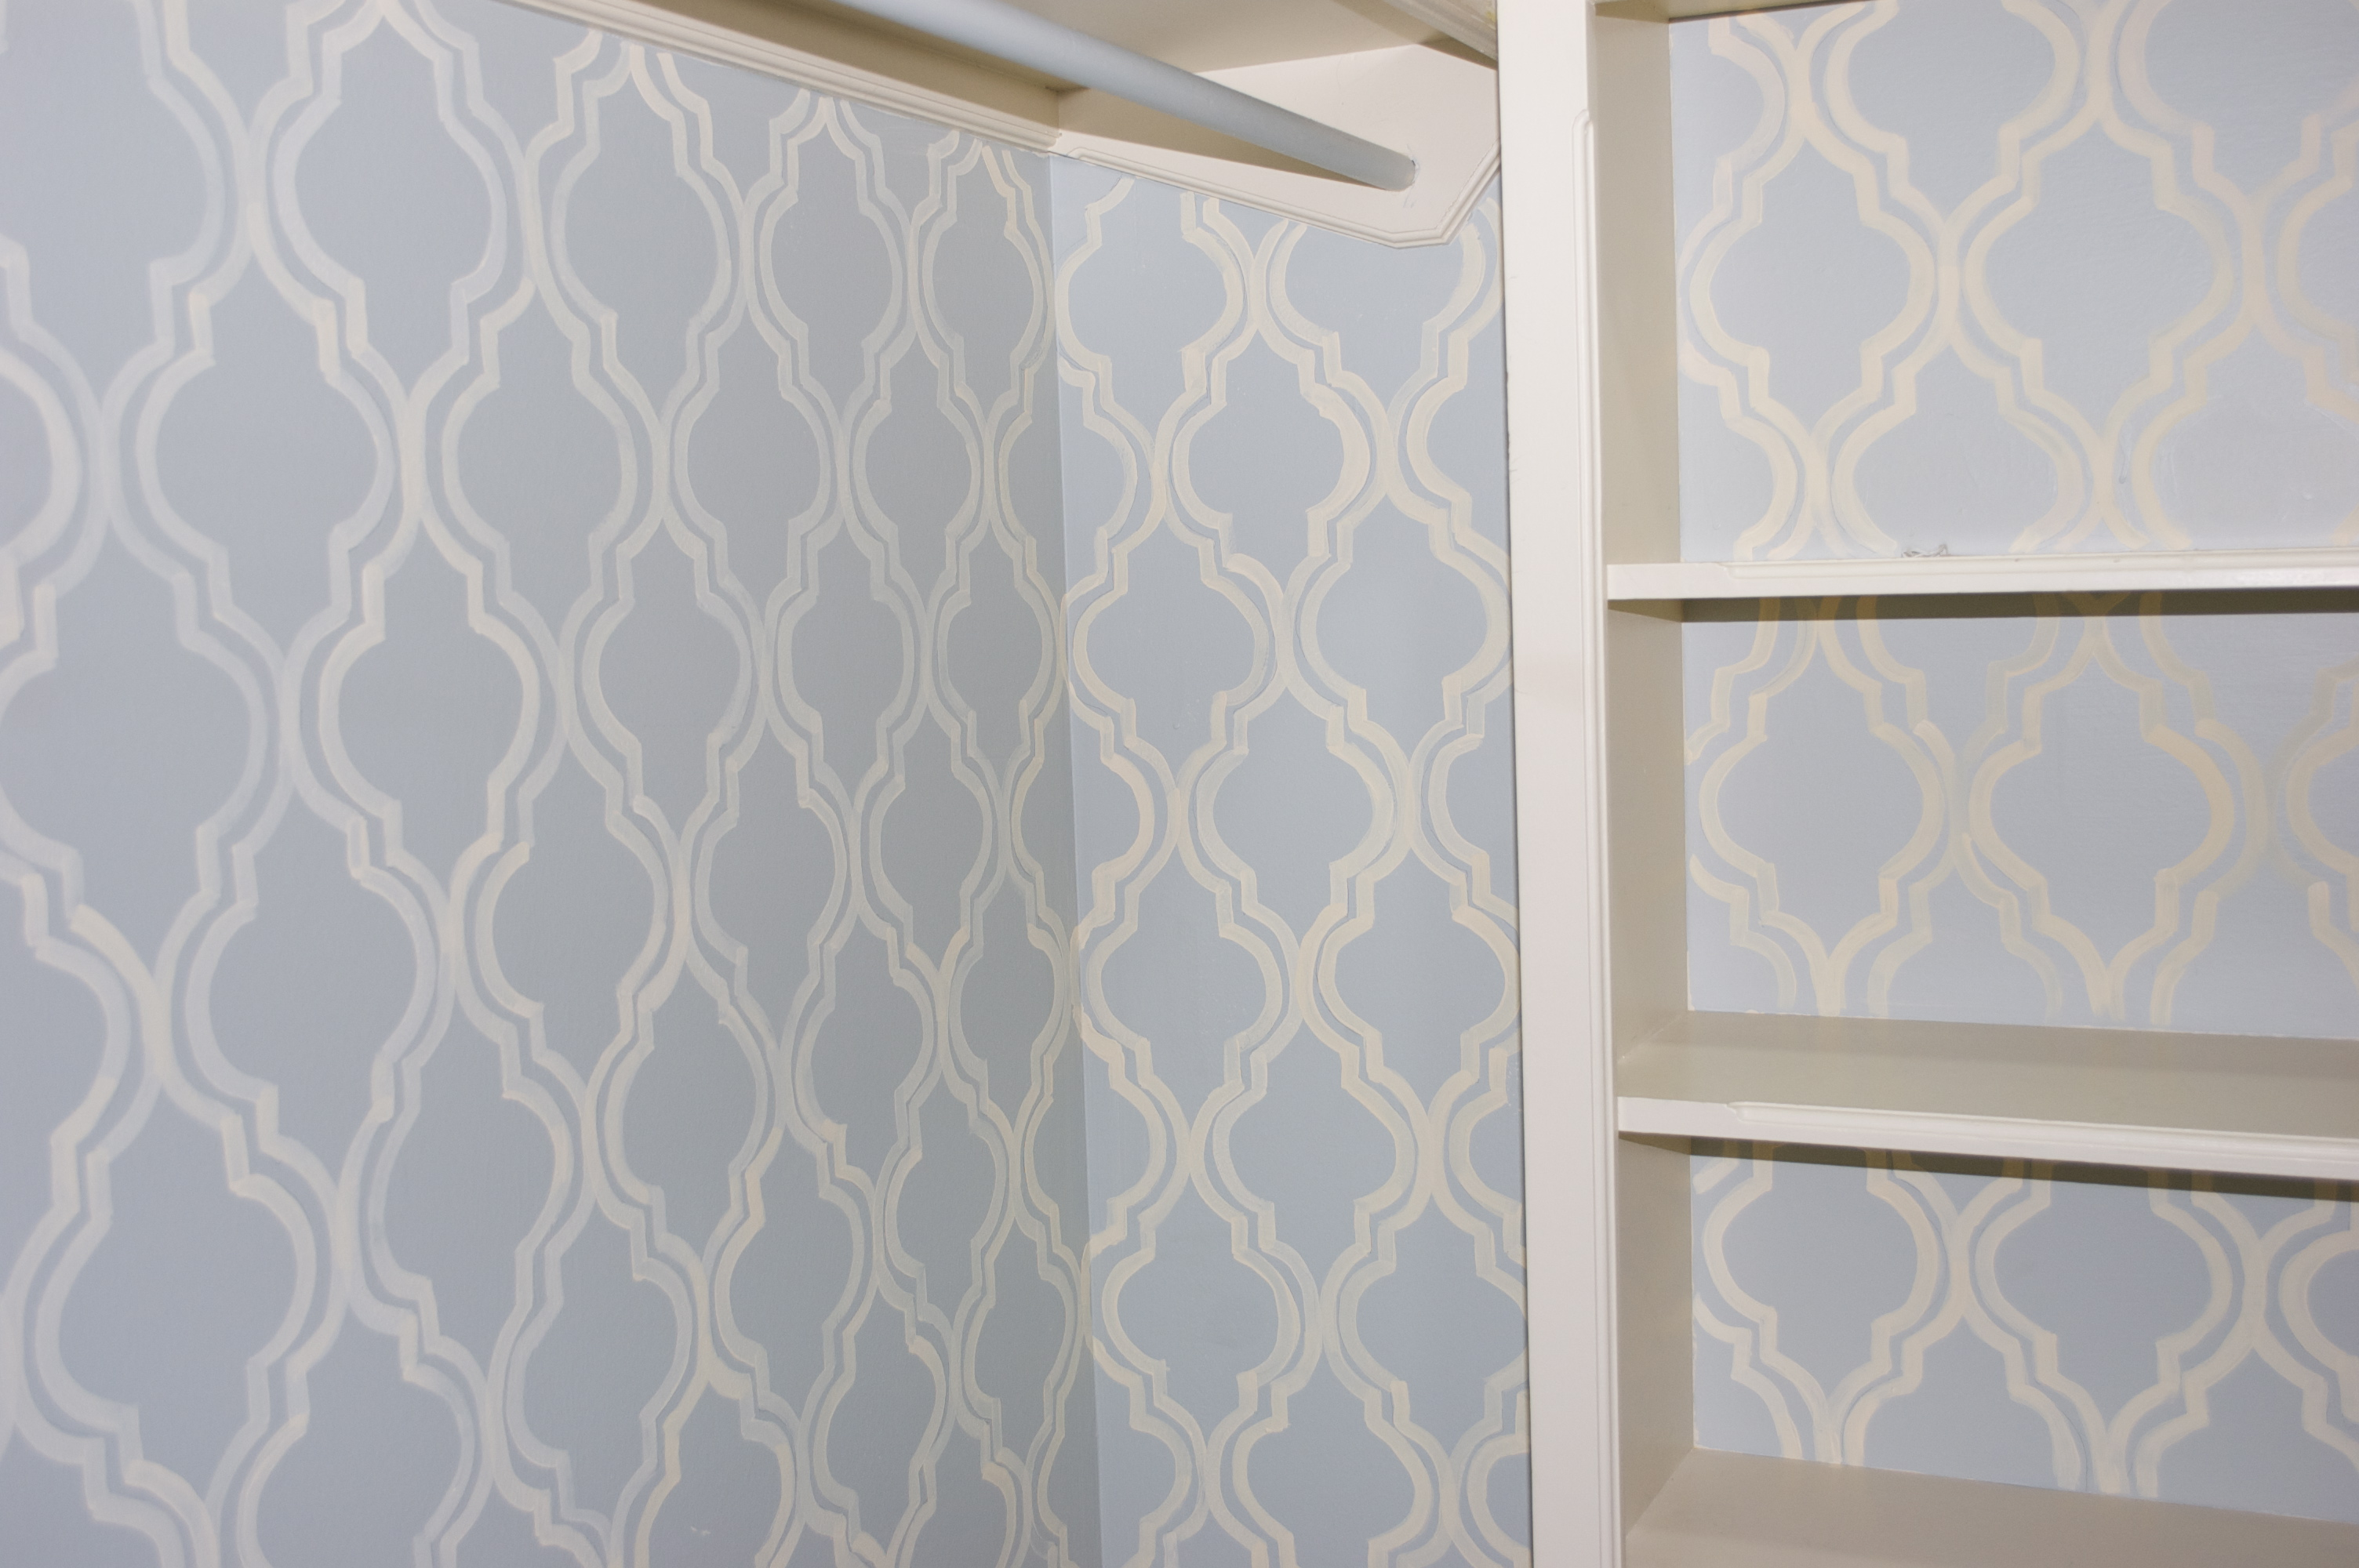 Country wallpaper borders sherwin williams wallpapersafari - Sherwin williams wallpaper borders ...